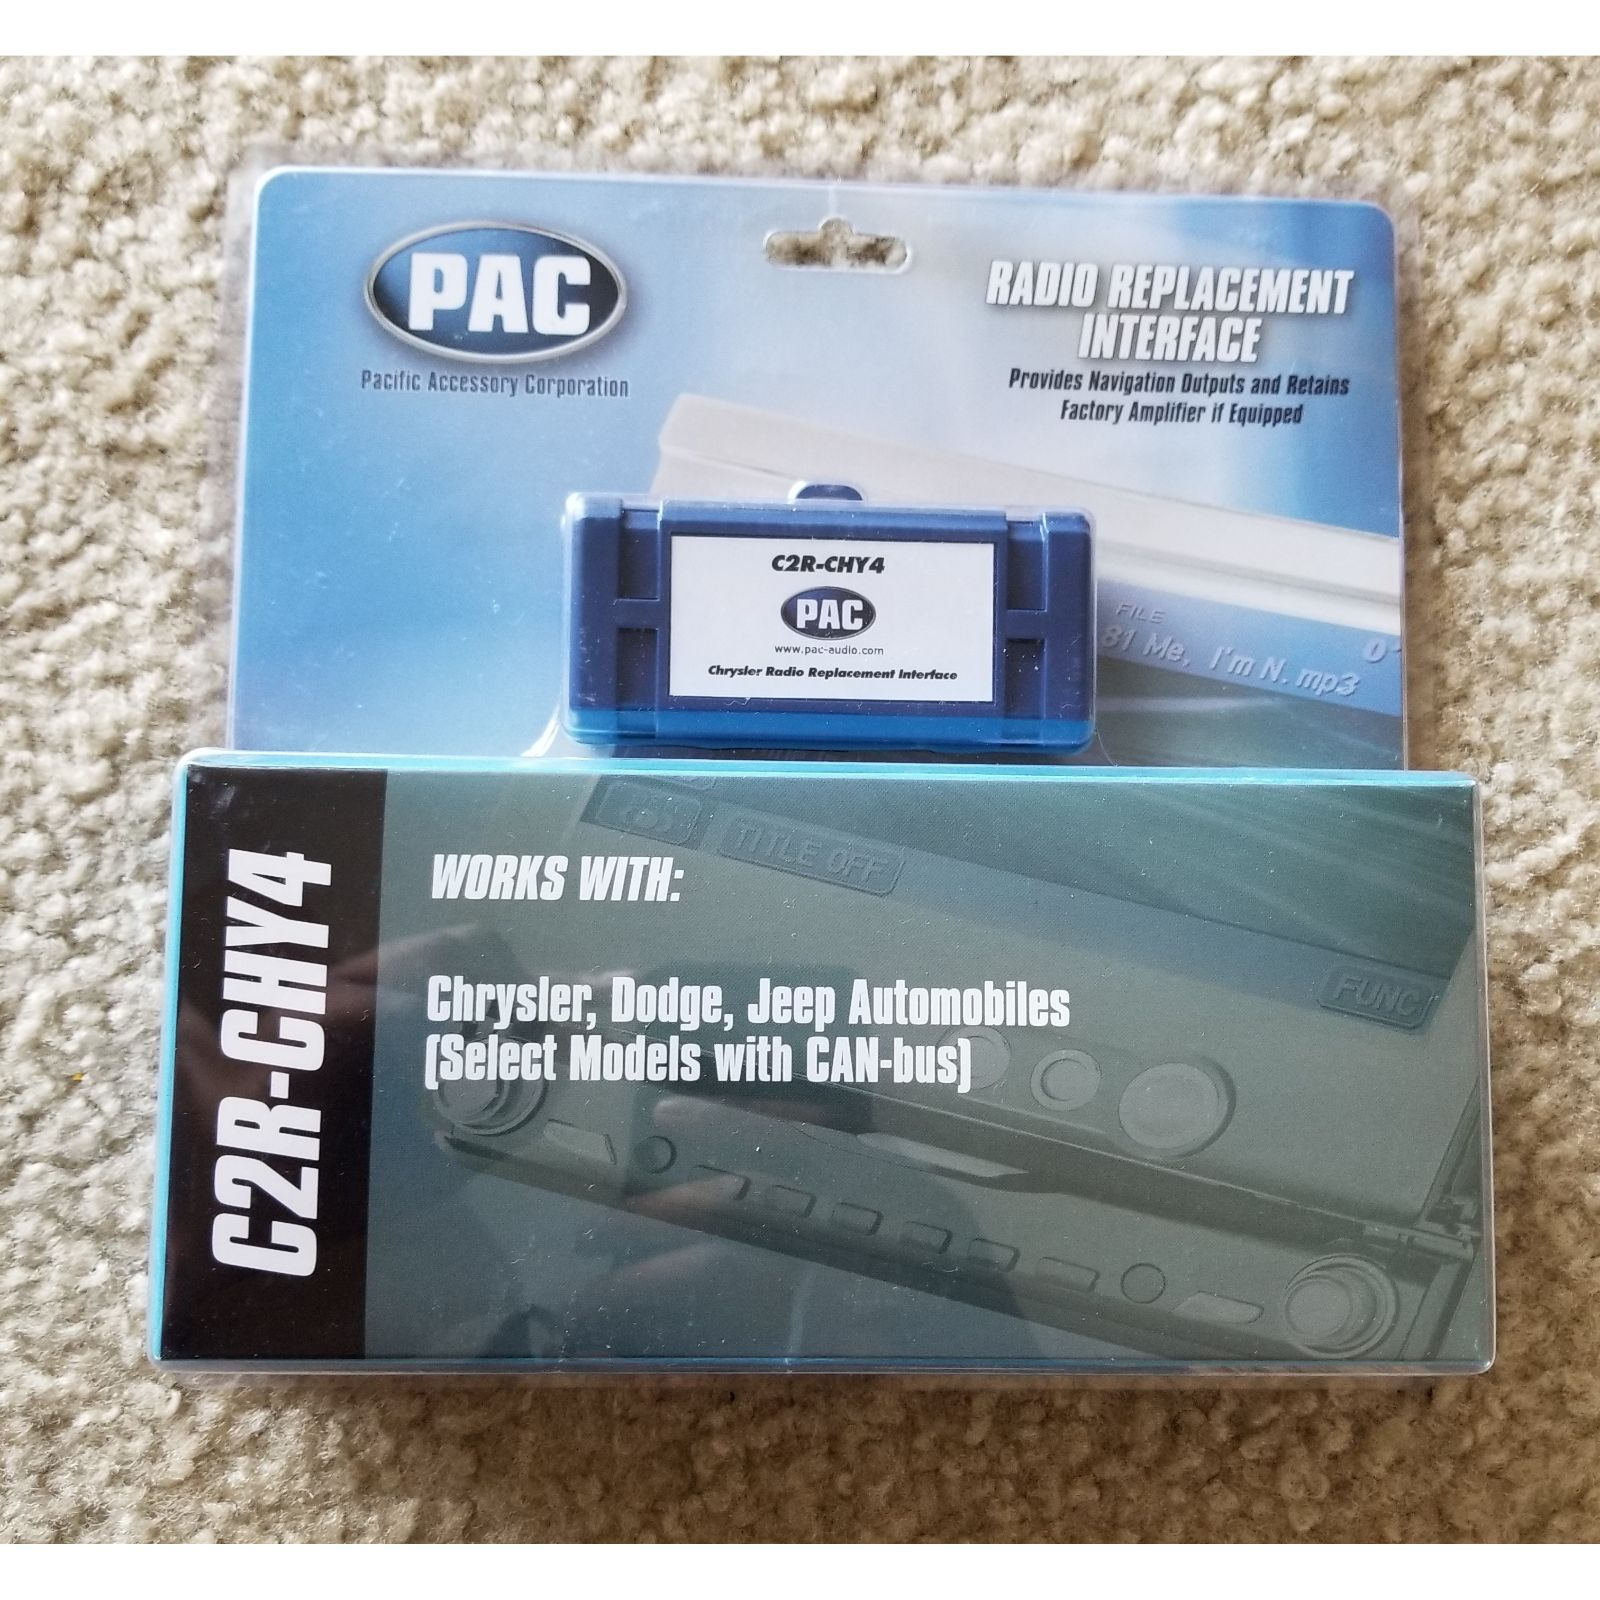 PAC Radio Replacement Interface